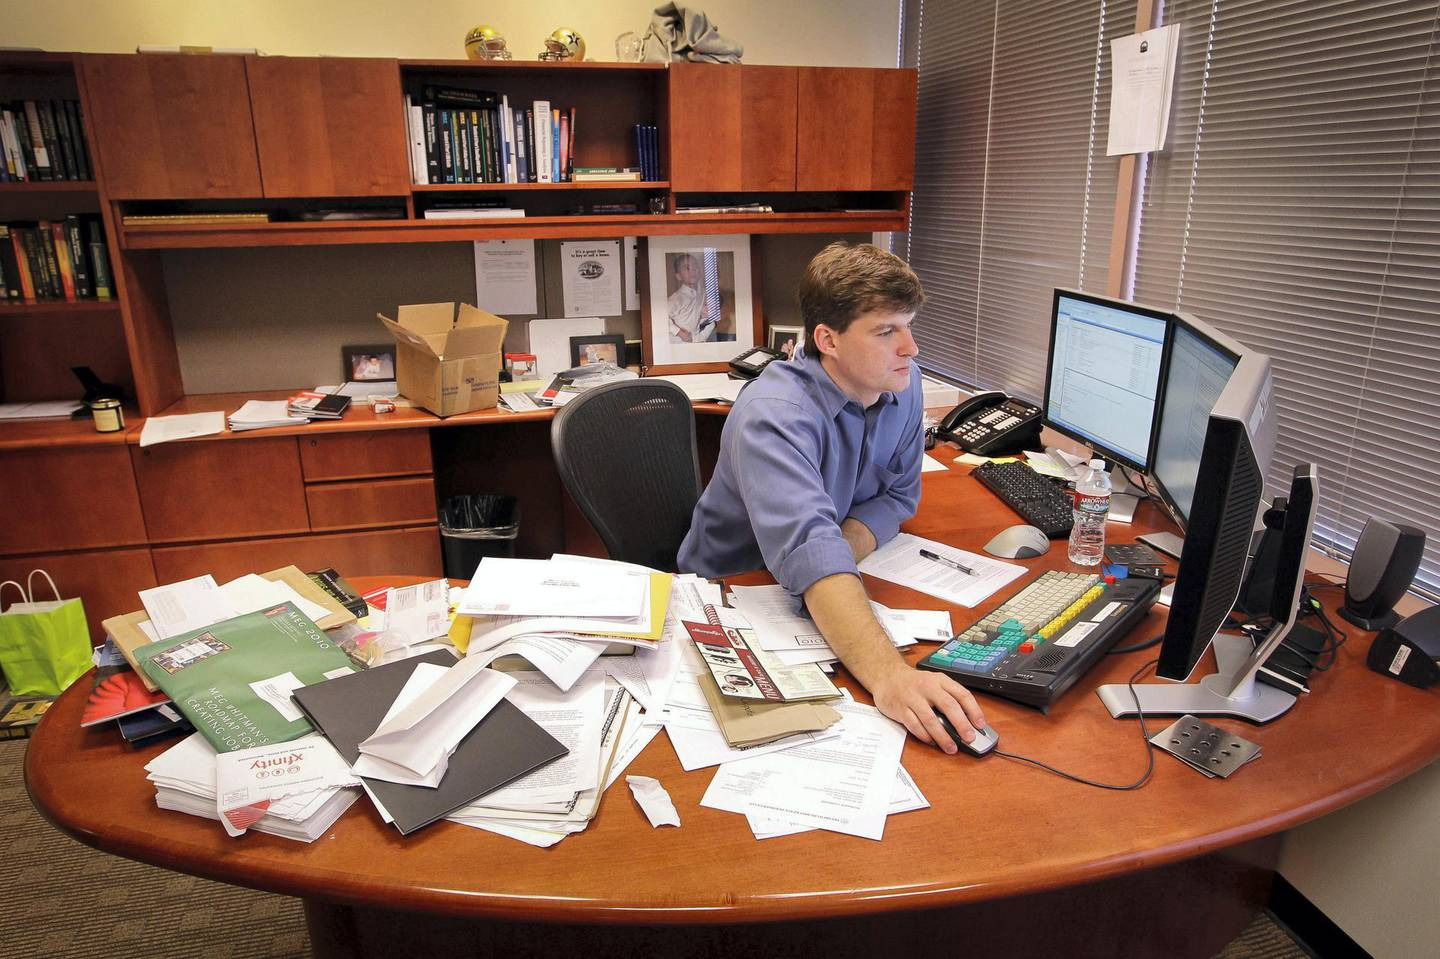 Michael Burry, former head of Scion Capital Group LLC, works in his office in Cupertino, California, U.S., on Monday, Sept. 6, 2010. Burry, the former hedge-fund manager who predicted the housing market's plunge, said he is investing in farmable land, small technology companies and gold as he hunts original ideas and braces for a weaker dollar. Photographer: Tony Avelar/Bloomberg *** Local Caption *** Michael Burry